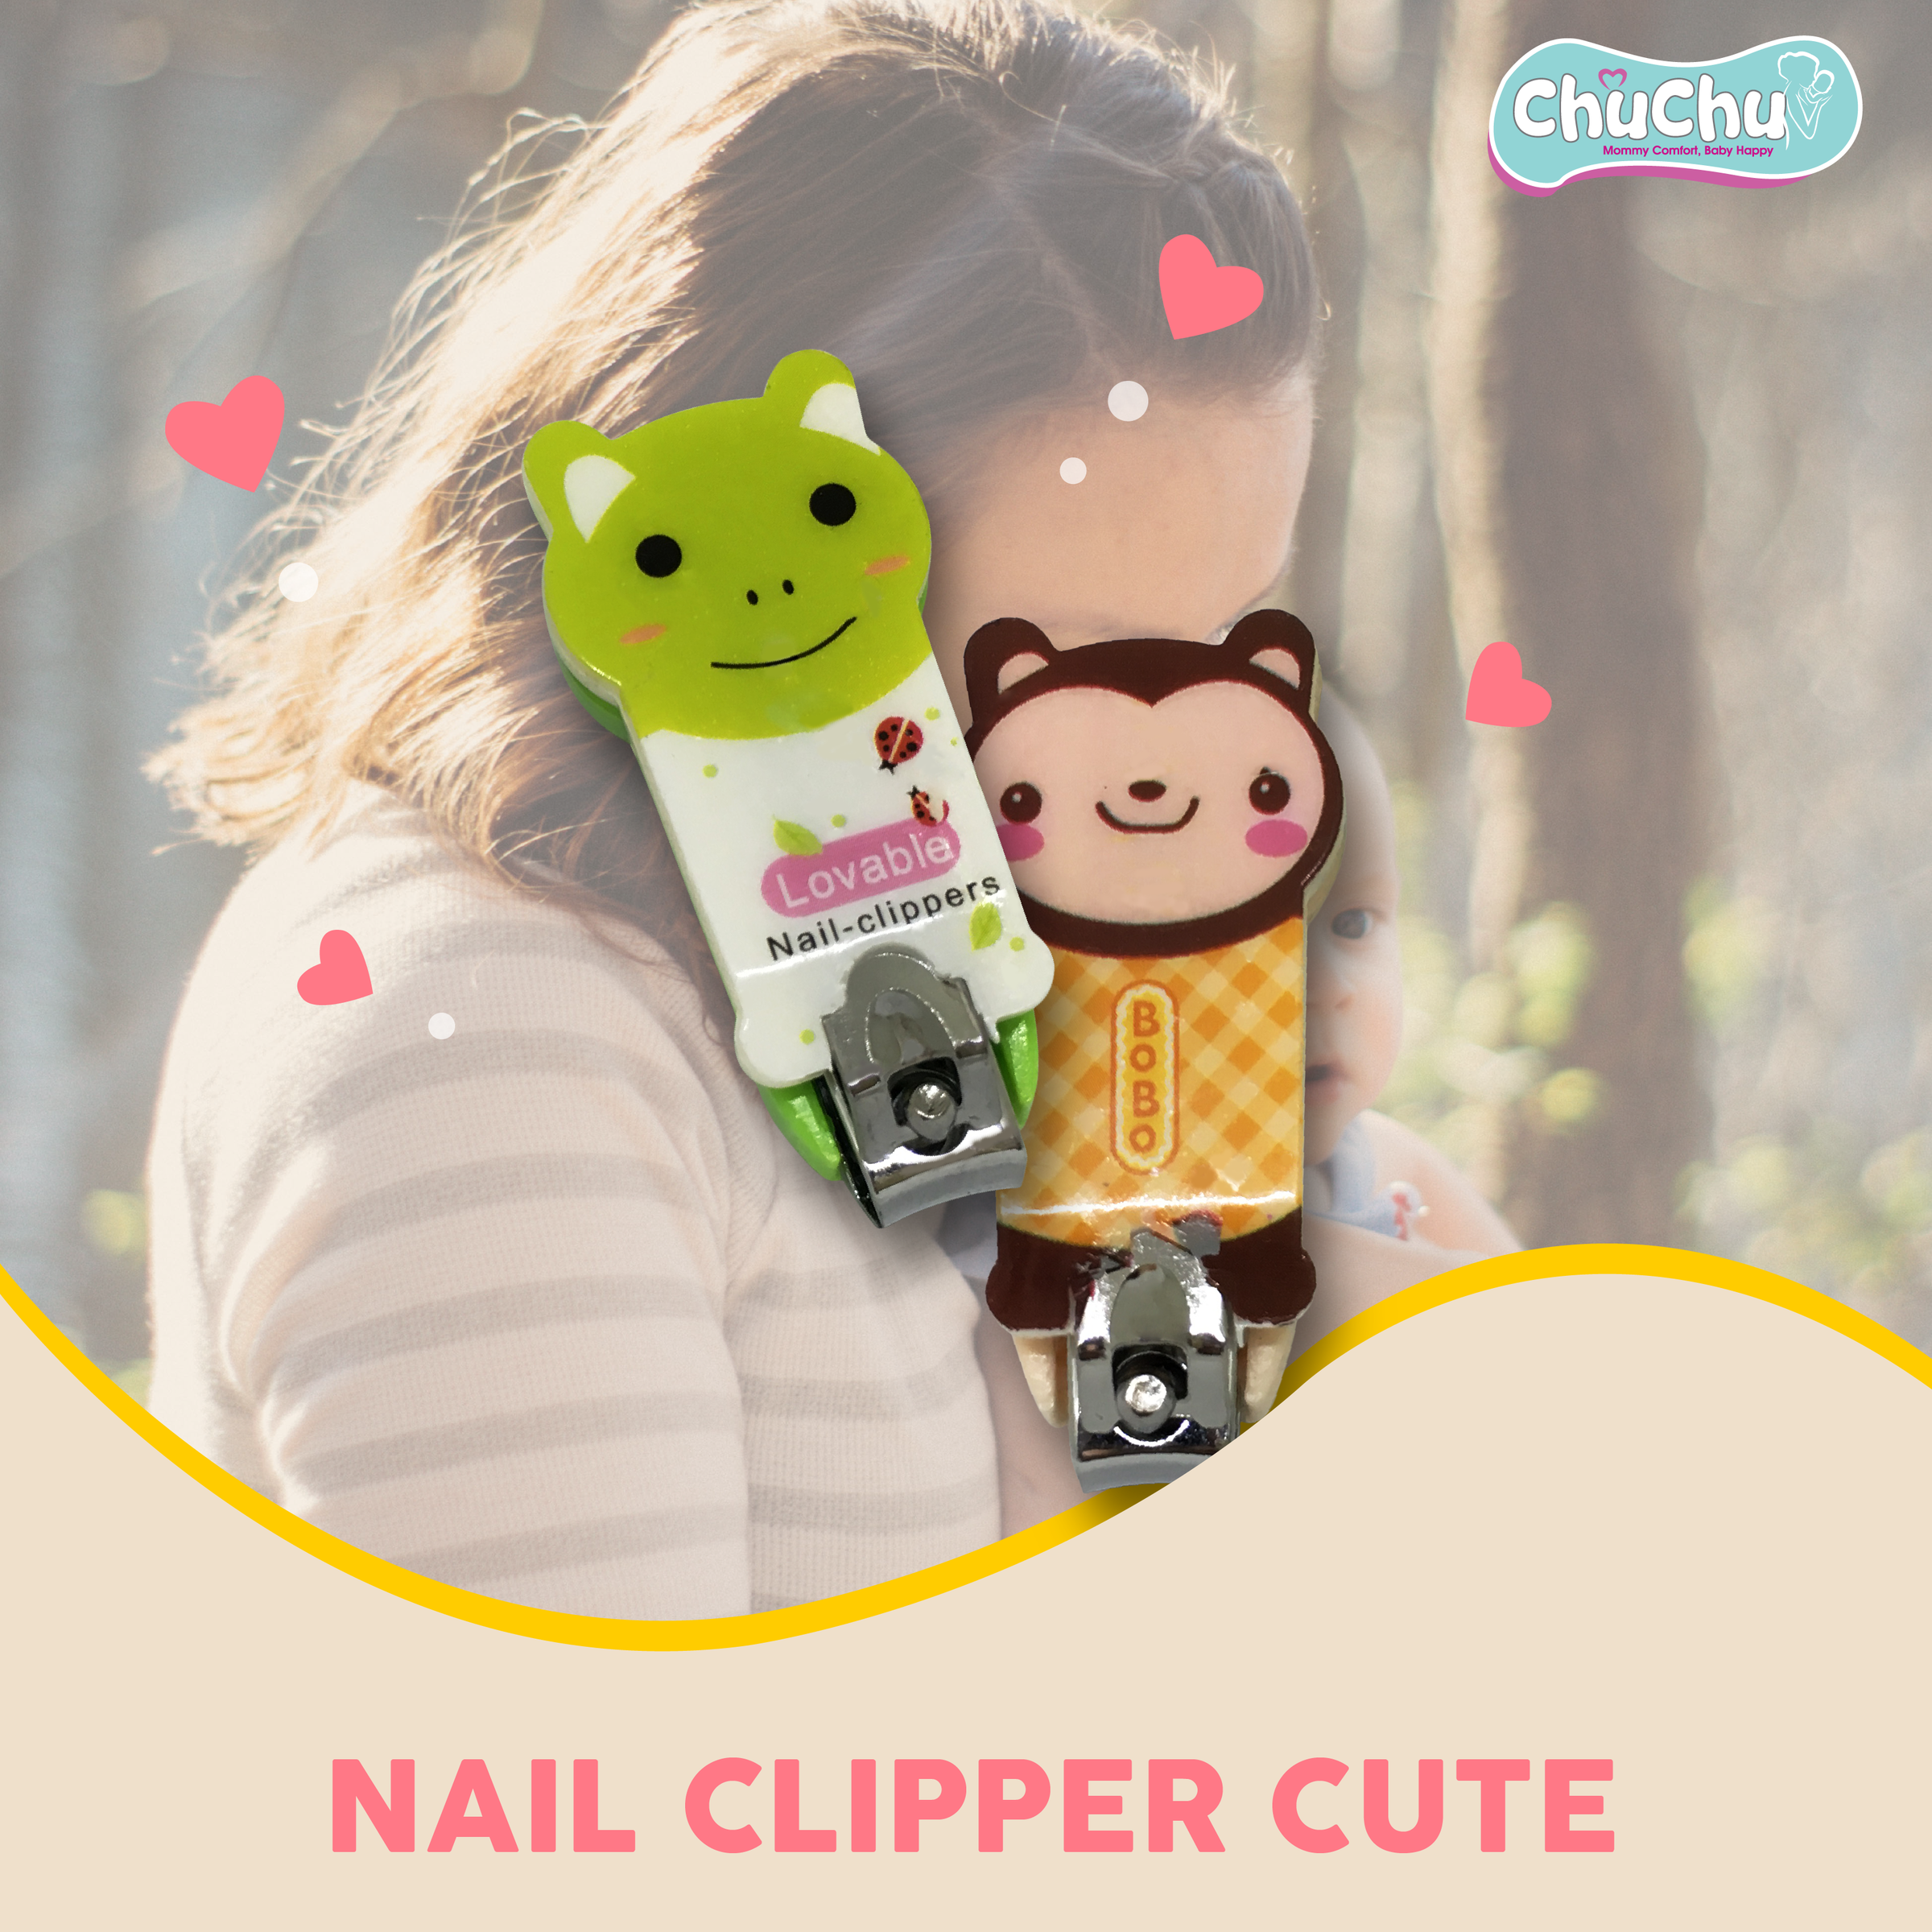 Nail Clipper Cute Chuchu.png